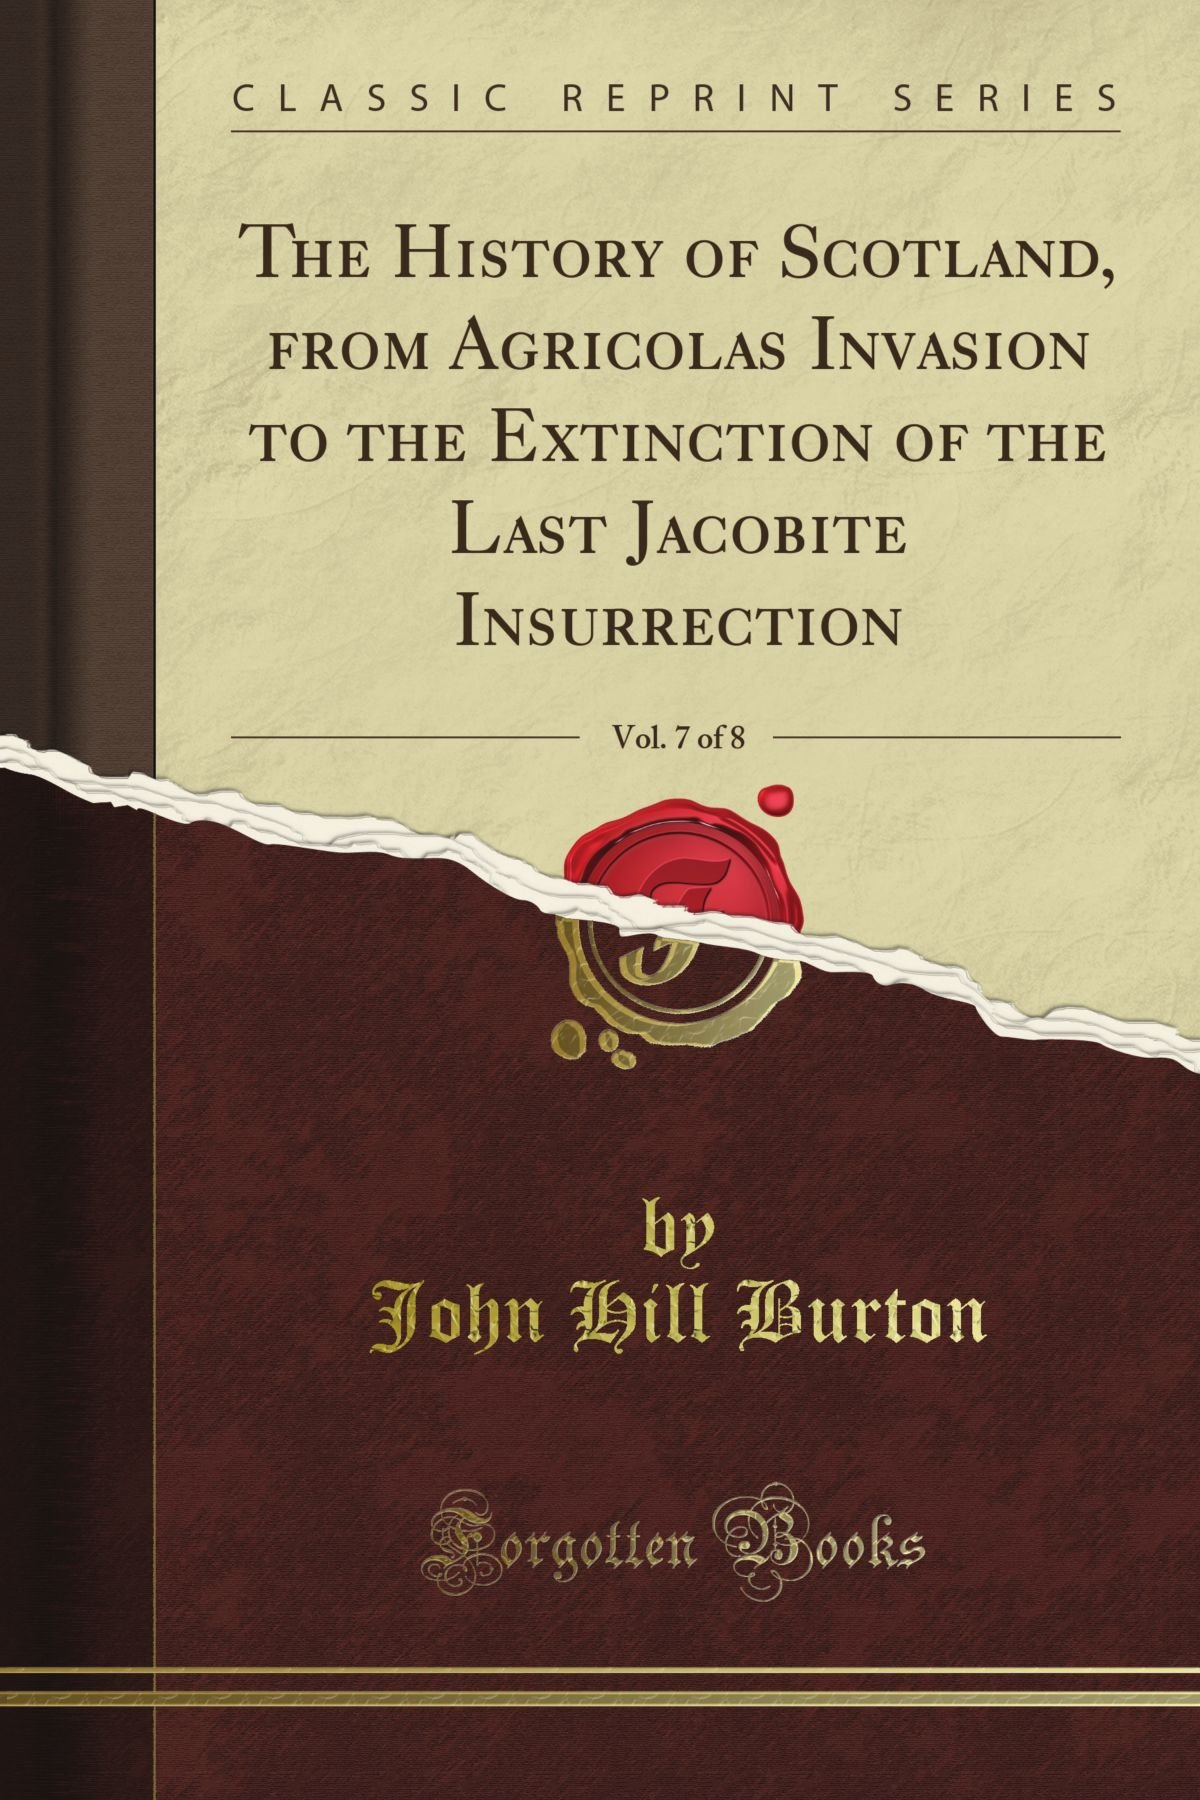 The History of Scotland, from Agricolas Invasion to the Extinction of the Last Jacobite Insurrection, Vol. 7 of 8 (Classic Reprint) PDF